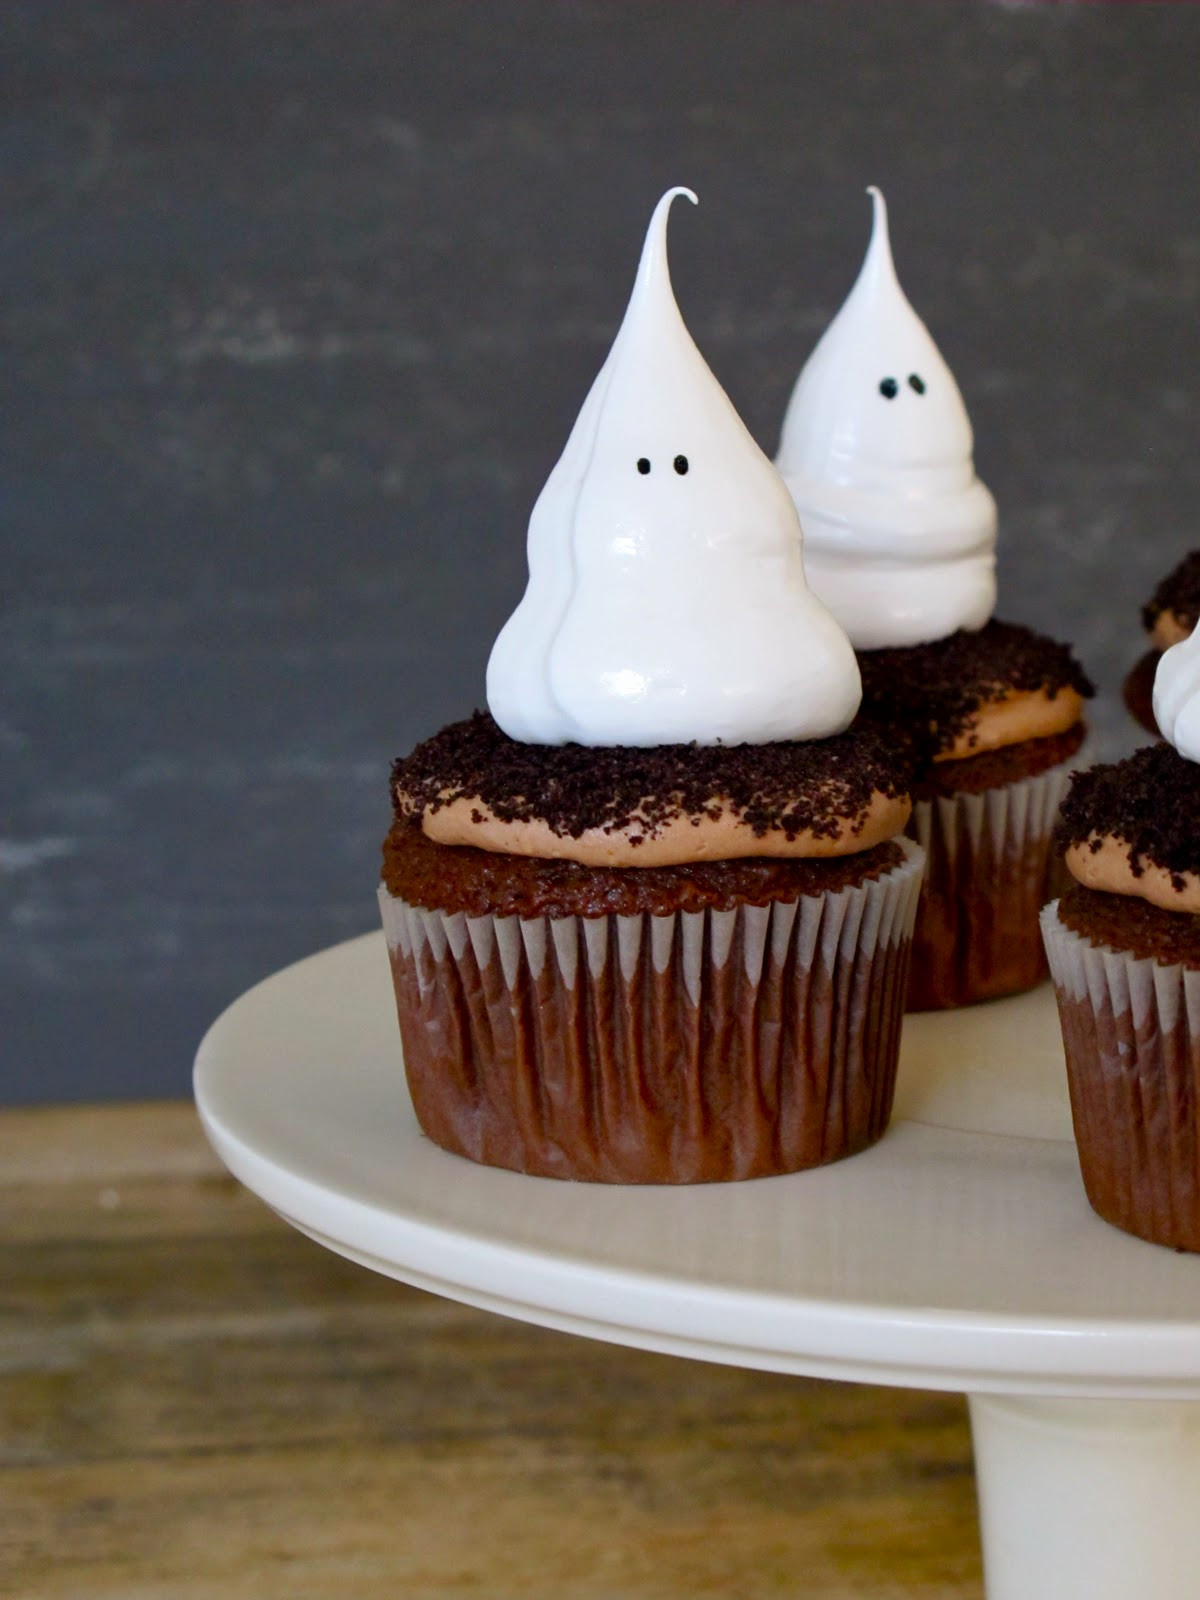 Halloween Cupcakes Cake  Jenny Steffens Hobick Halloween Cupcakes